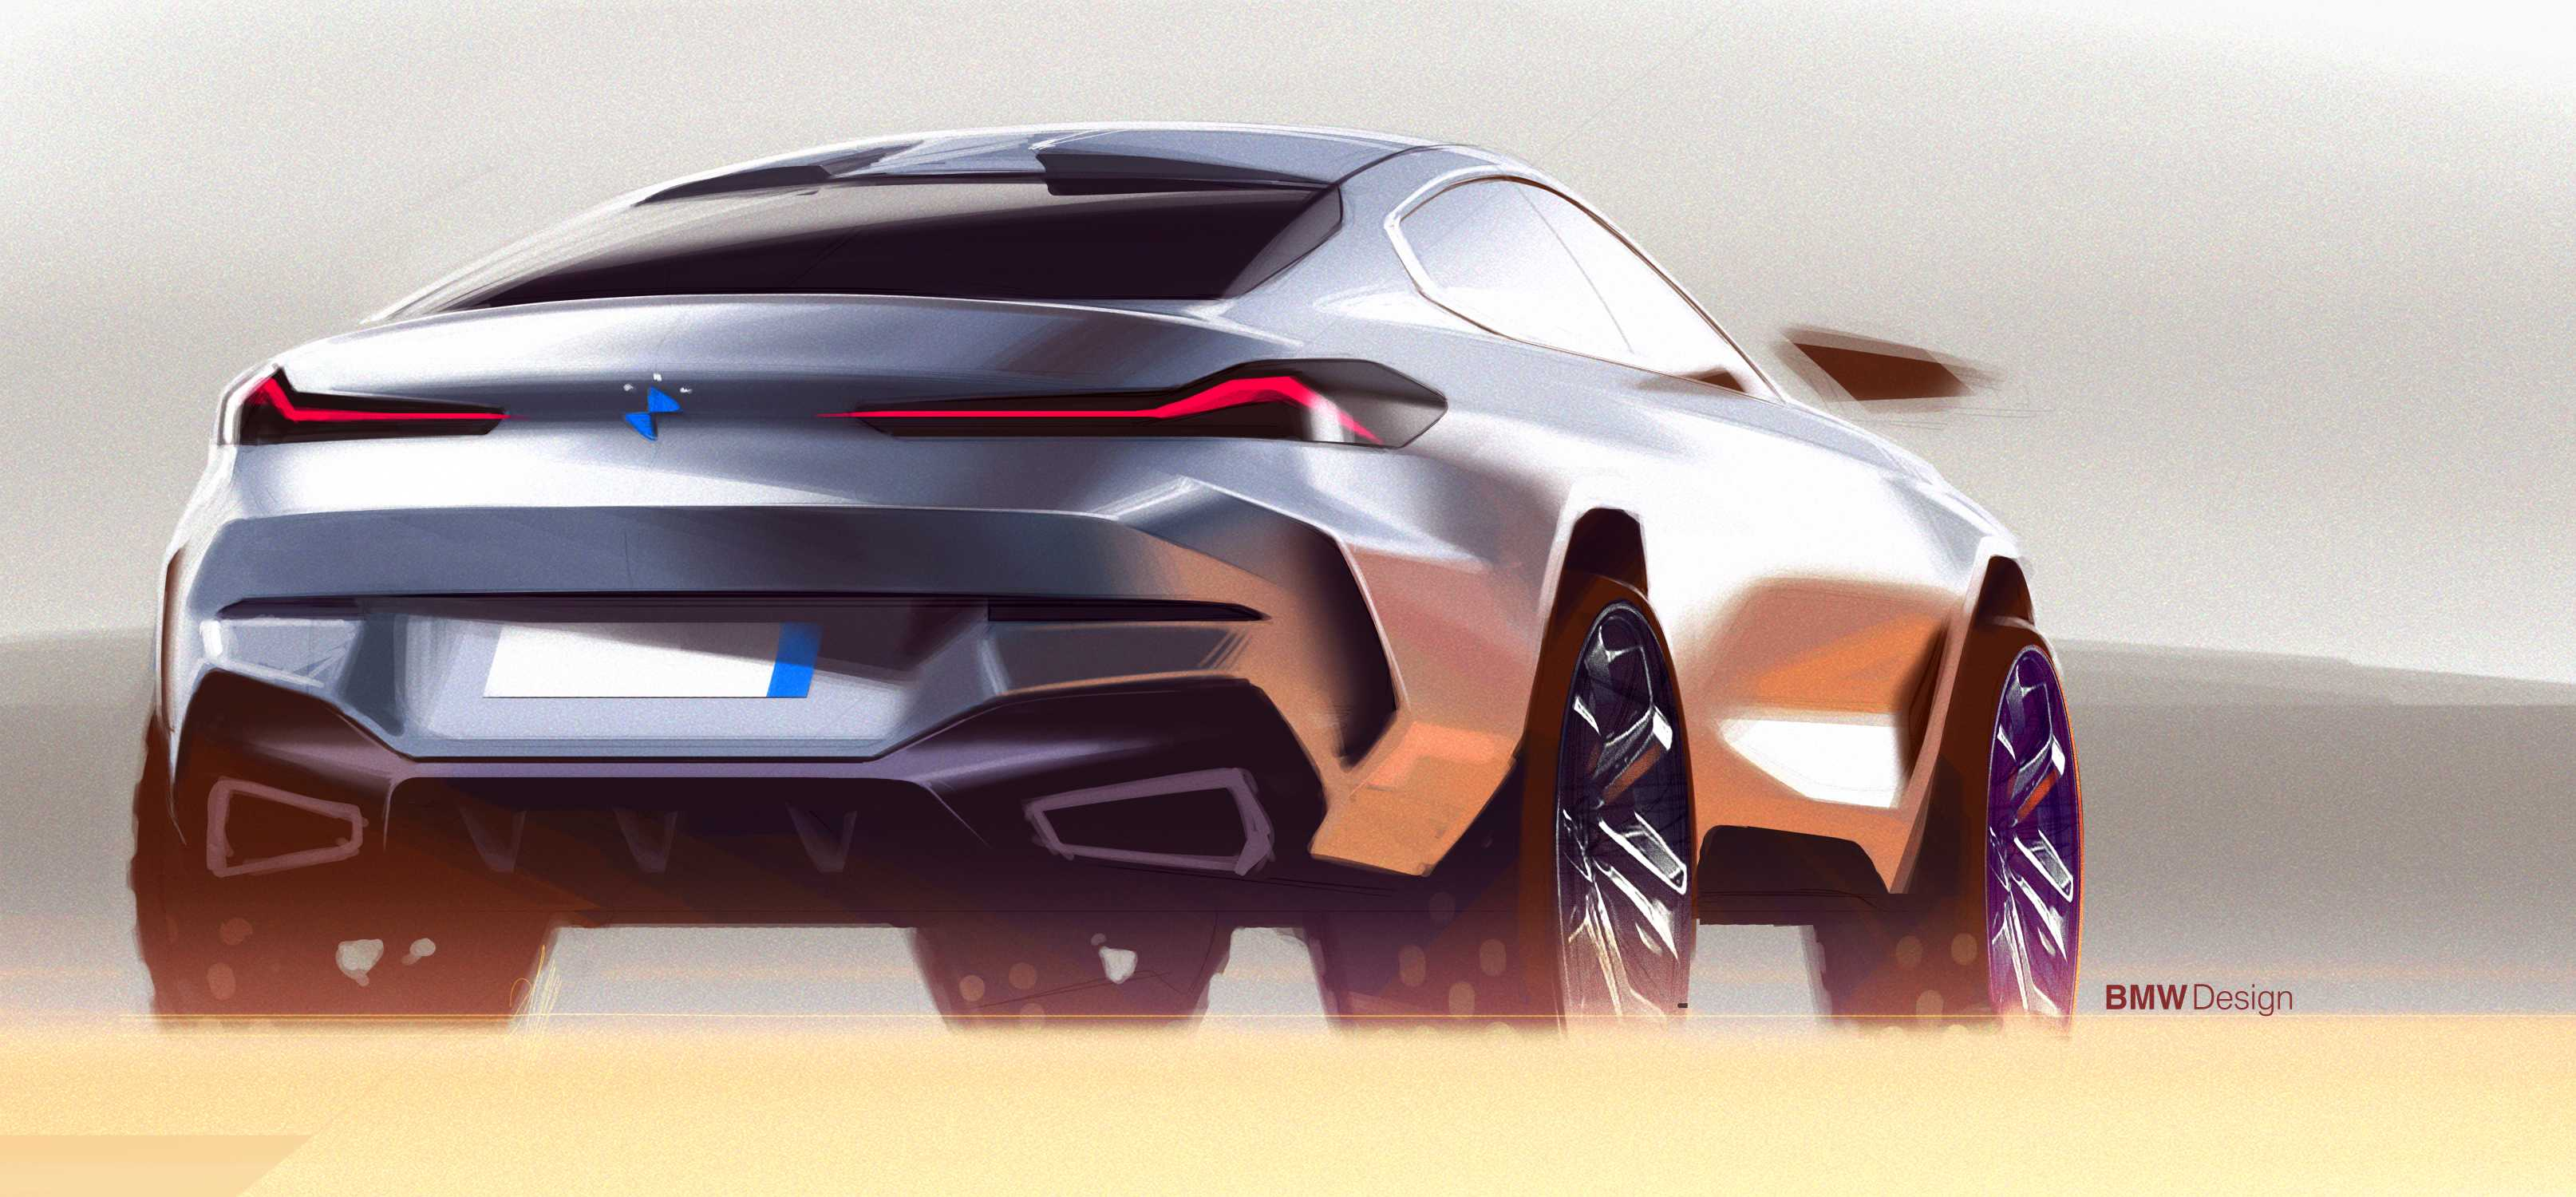 The all-new BMW X6 – Design sketches and process (07/2019)